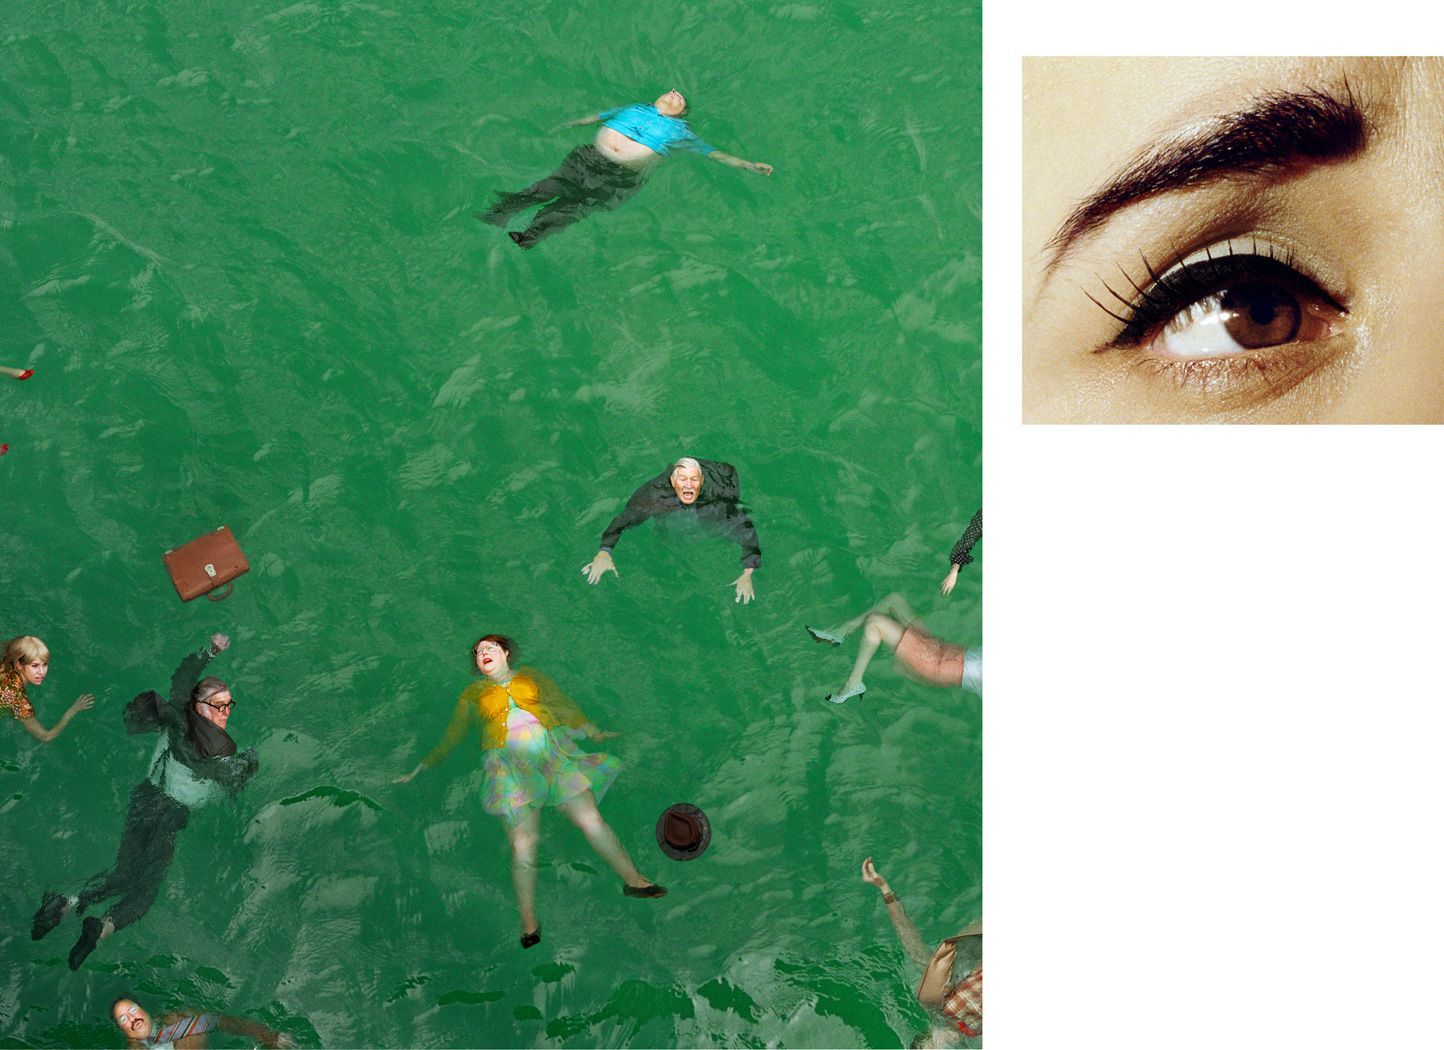 ALEX PRAGER 3:14 pm, Pacific Ocean and Eye #9 (Passenger Casualties), 2012